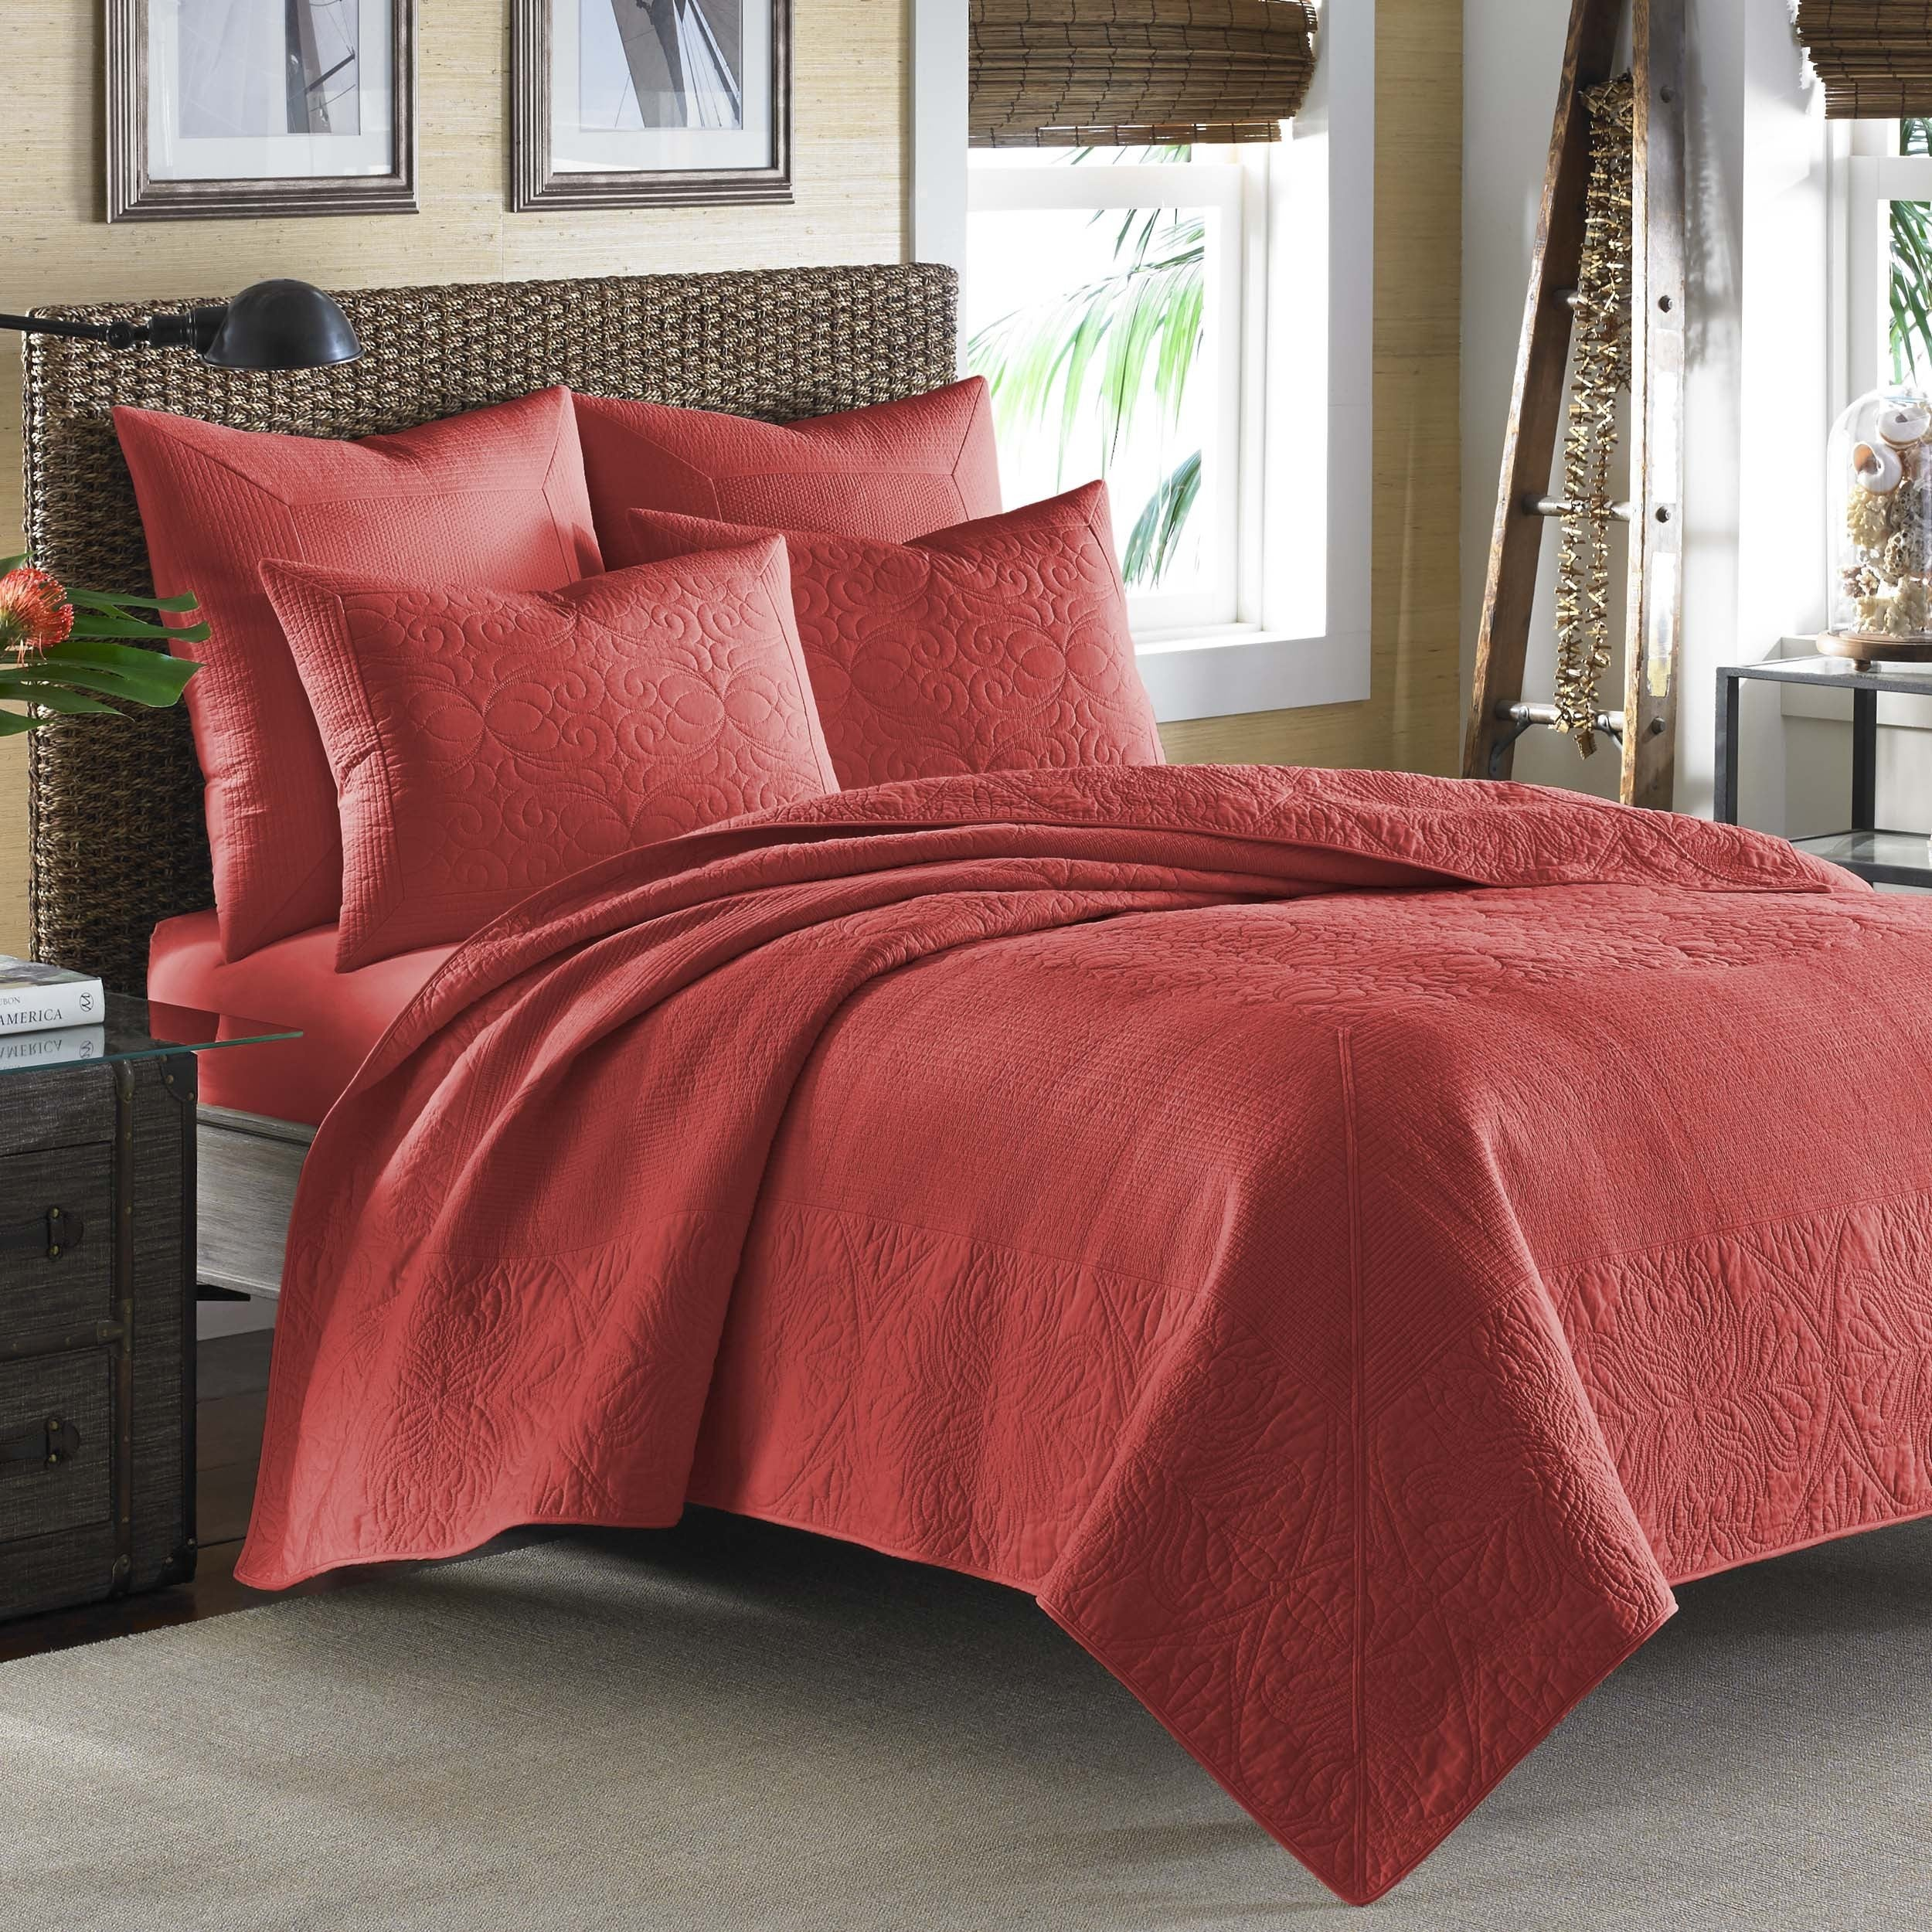 birds comp src bahama belk online product only a layer dwp bedding paradise collection comforter tommy king p zoom set of desktop